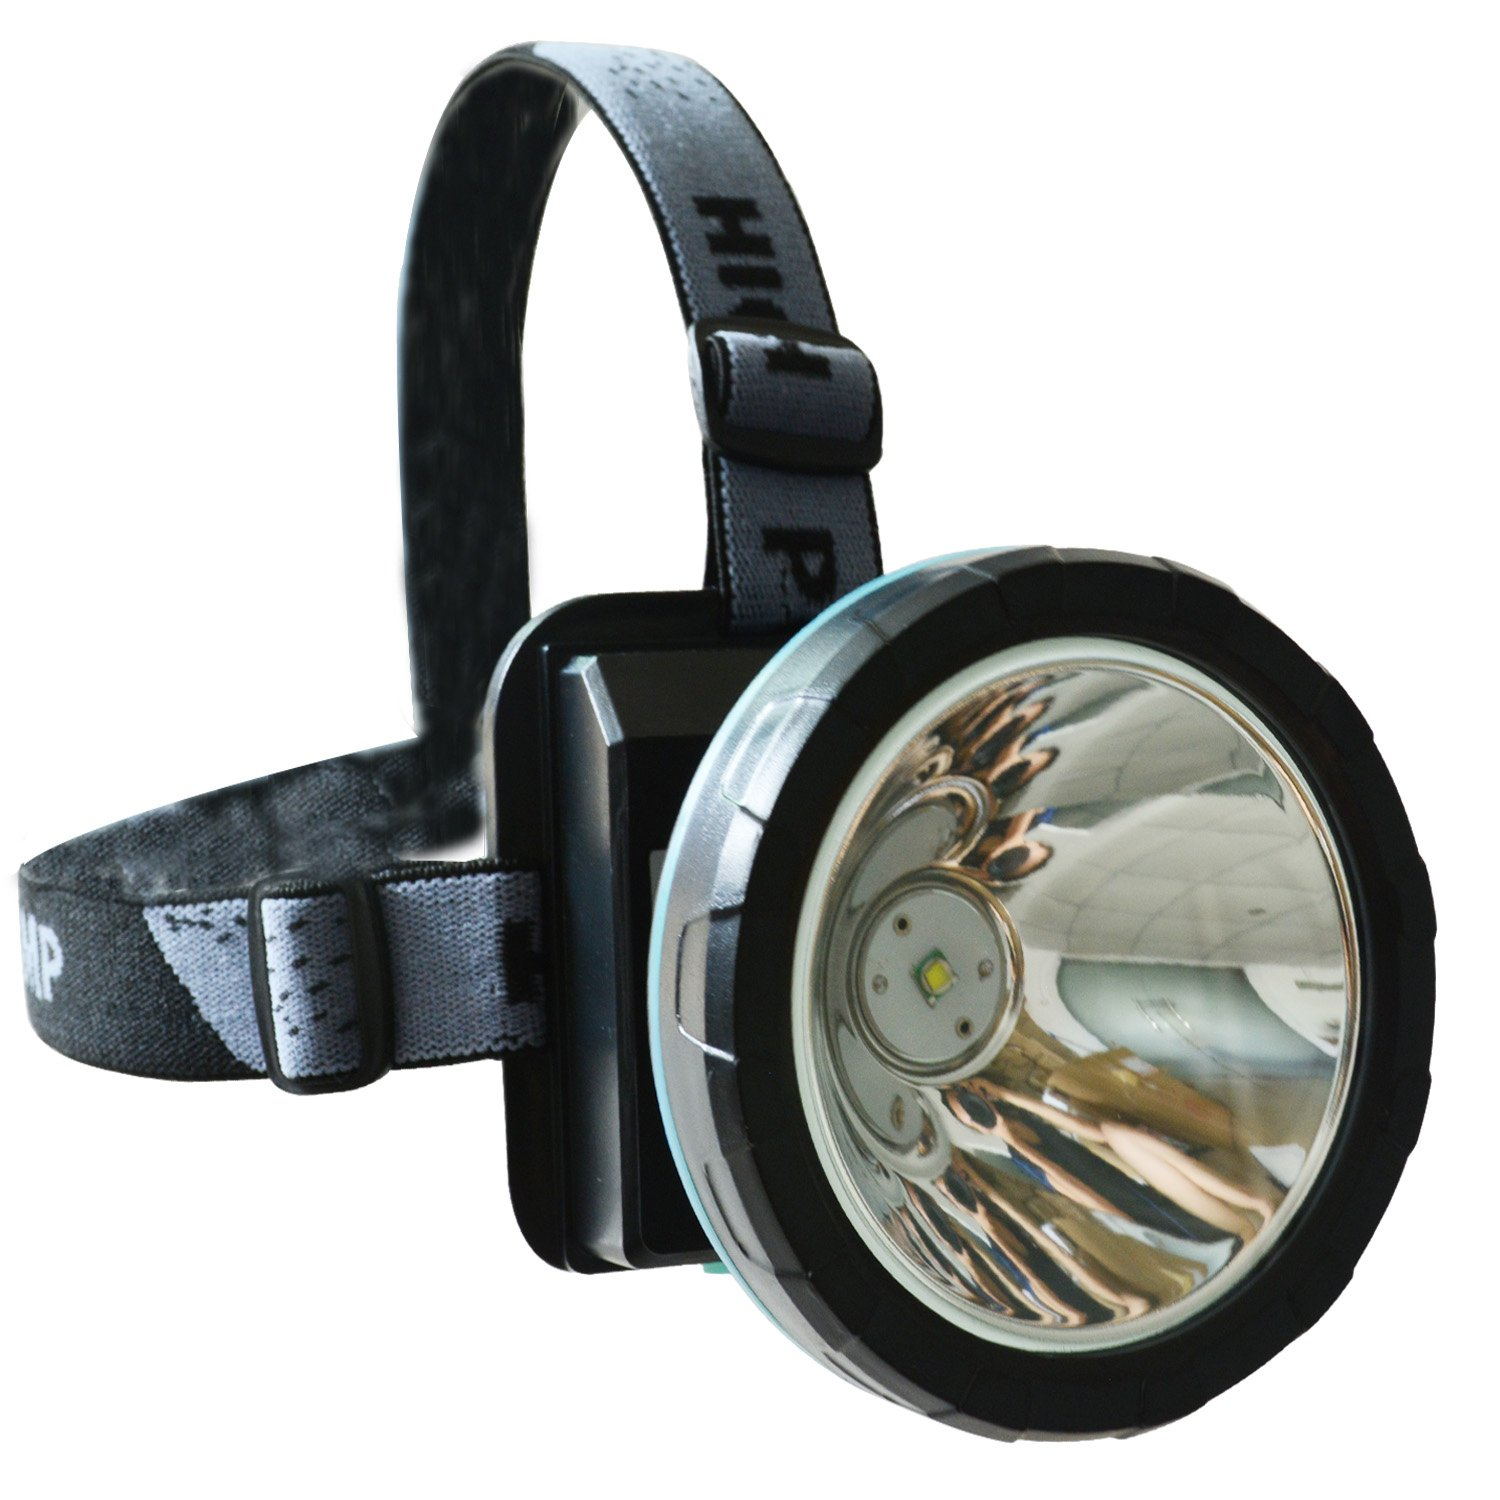 Odear Lie Wang Headlamp Rechargeable LED Flashlight for Mining,Camping, Hiking, Fishing by ODEAR